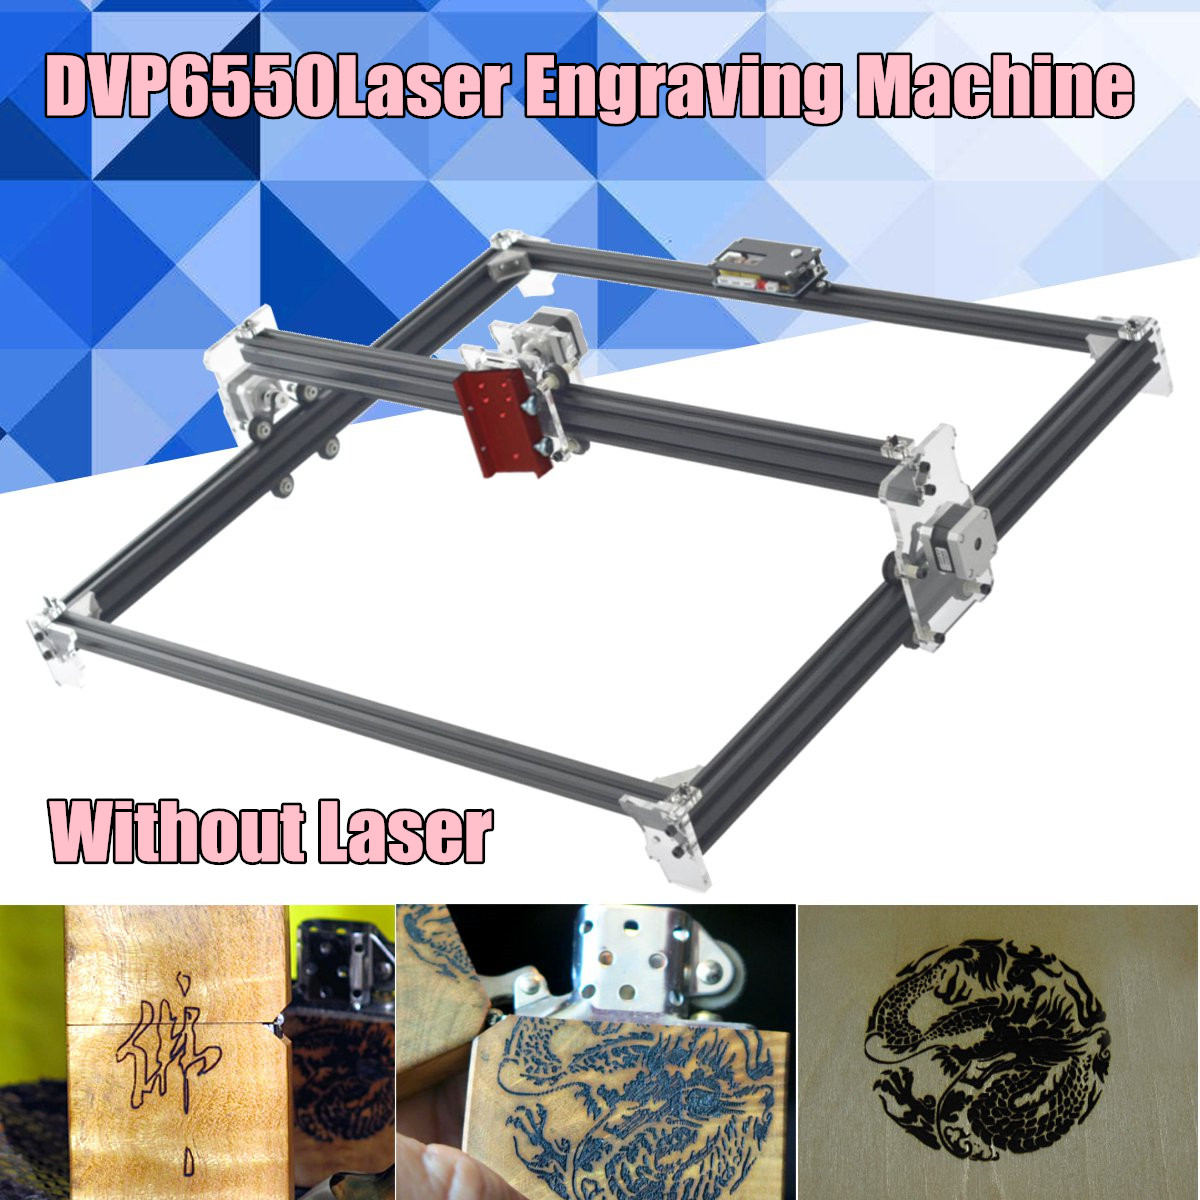 65x50cm 2Axis Laser Engraving Cutting Machine Engraver CNC Desktop CNC Router Best Advanced toys Without Laser цена